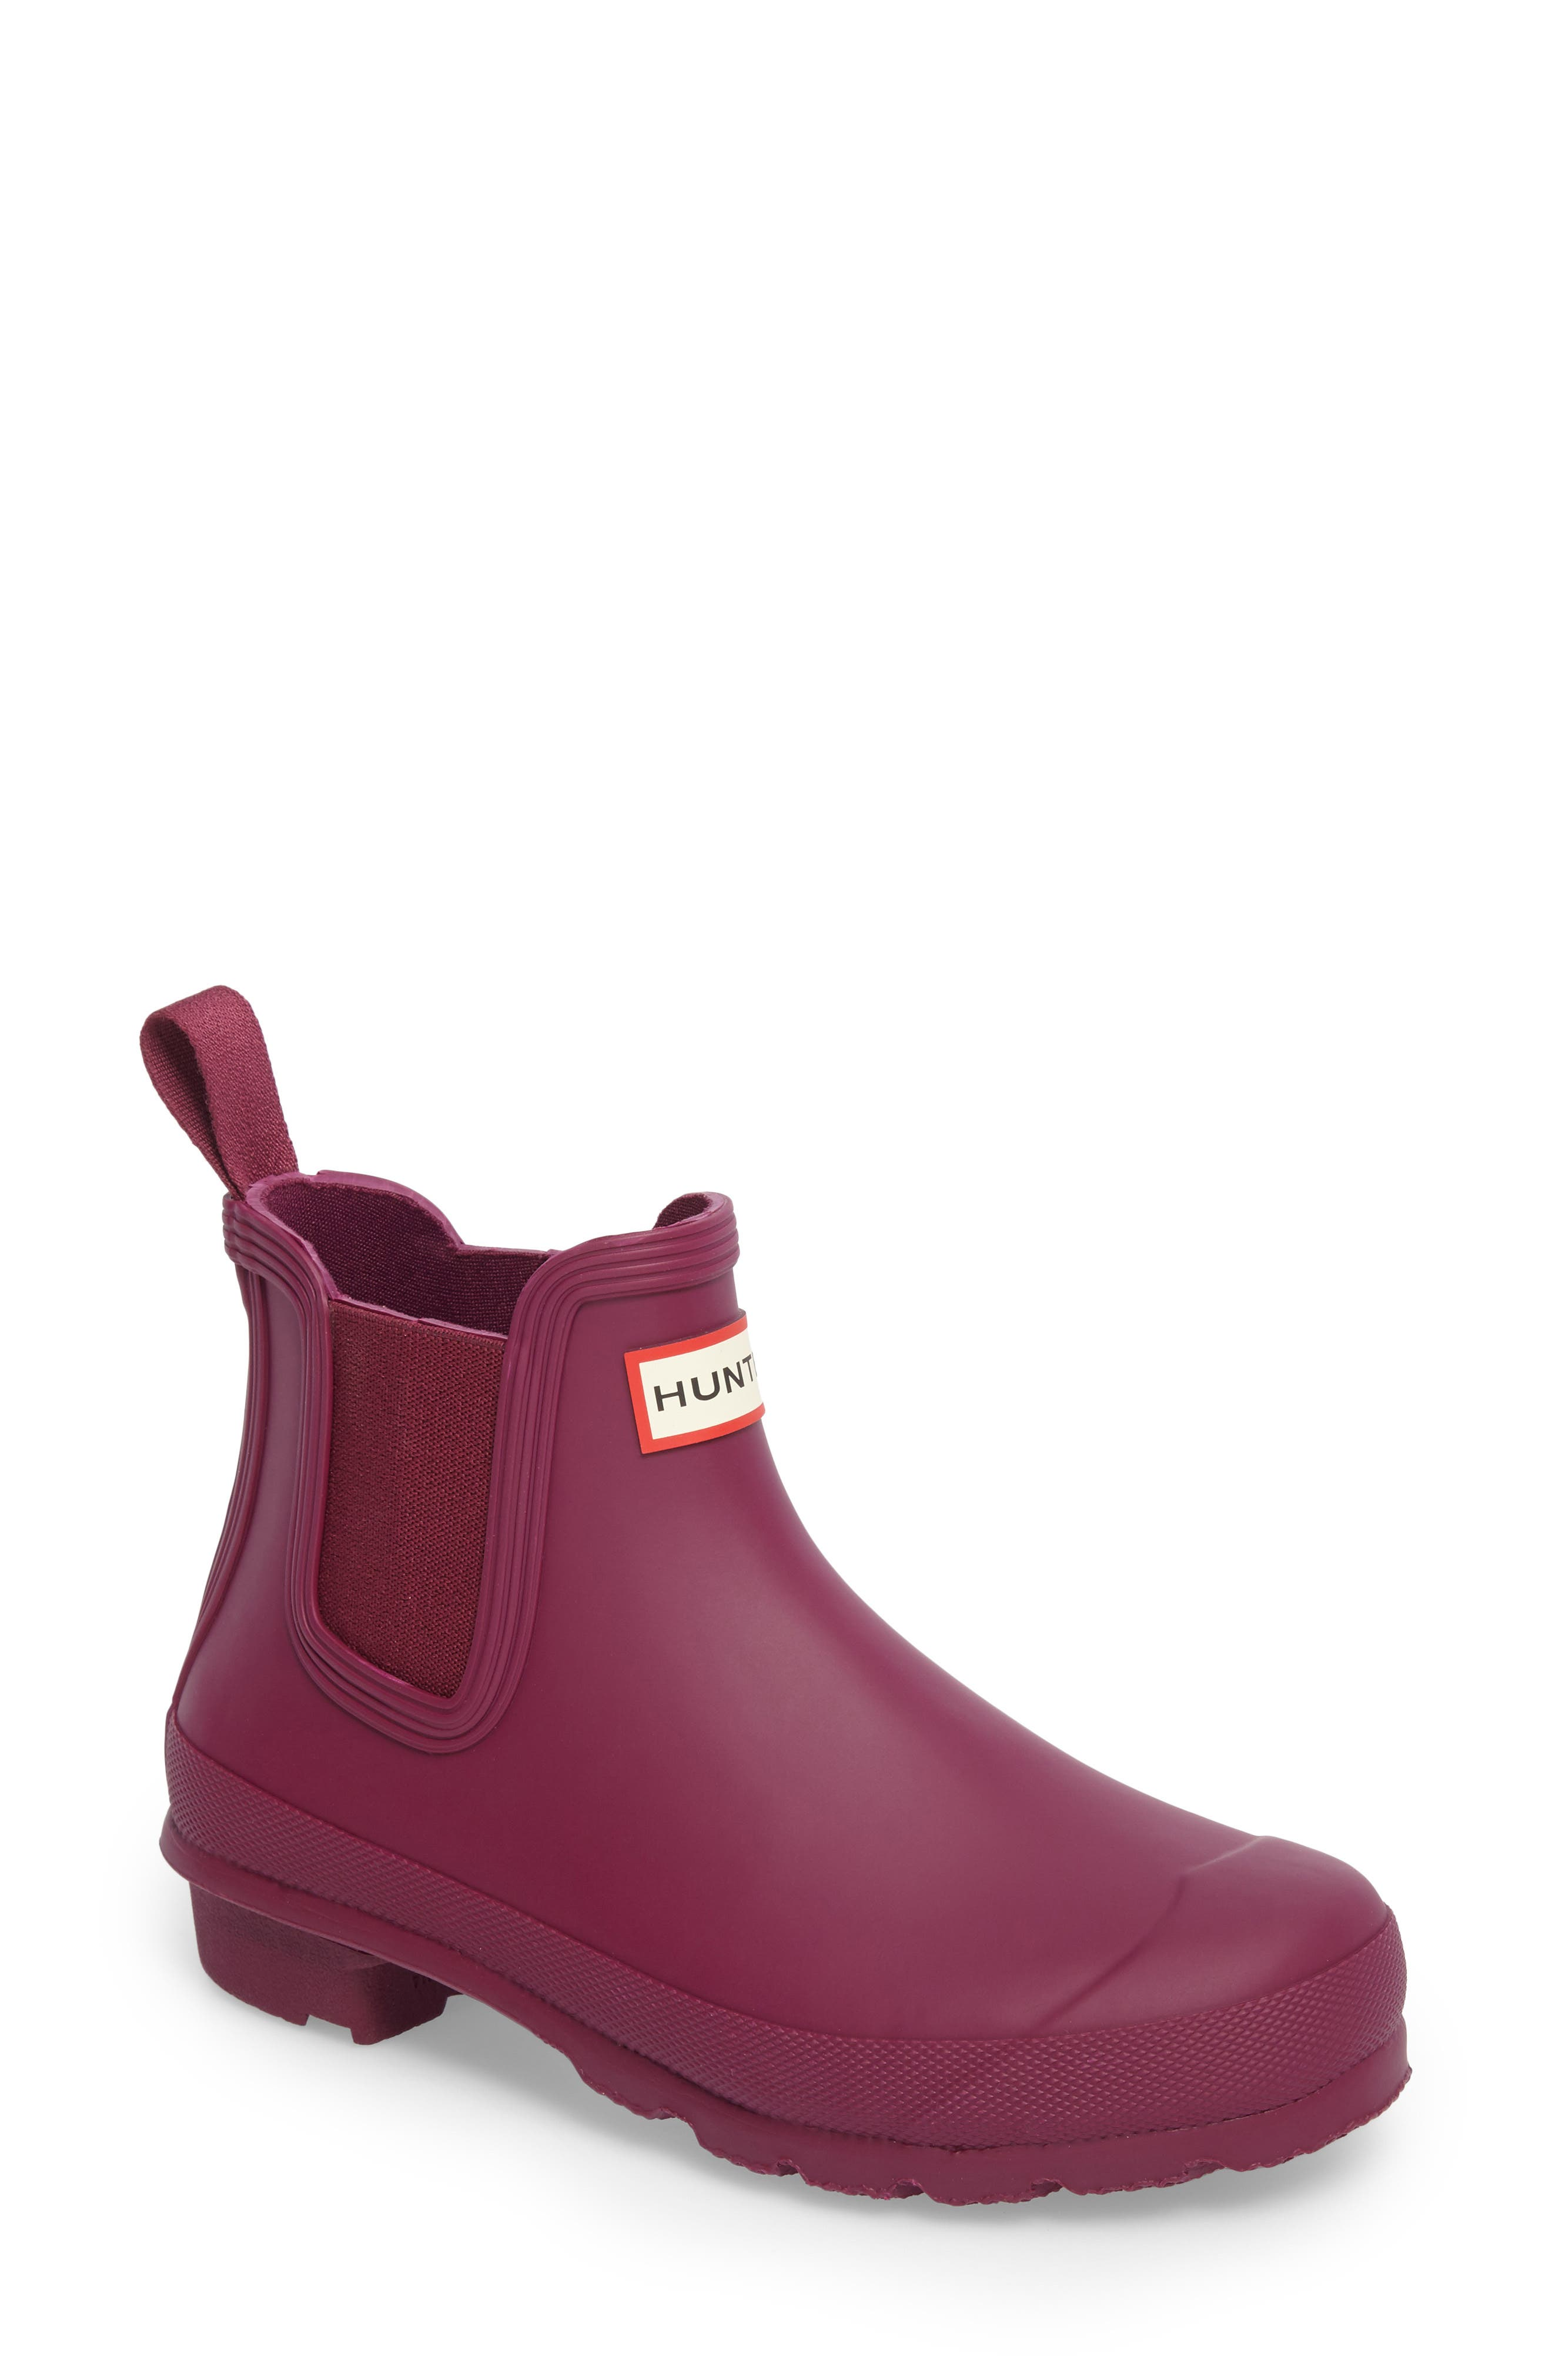 'Original' Waterproof Chelsea Rain Boot,                         Main,                         color, Violet